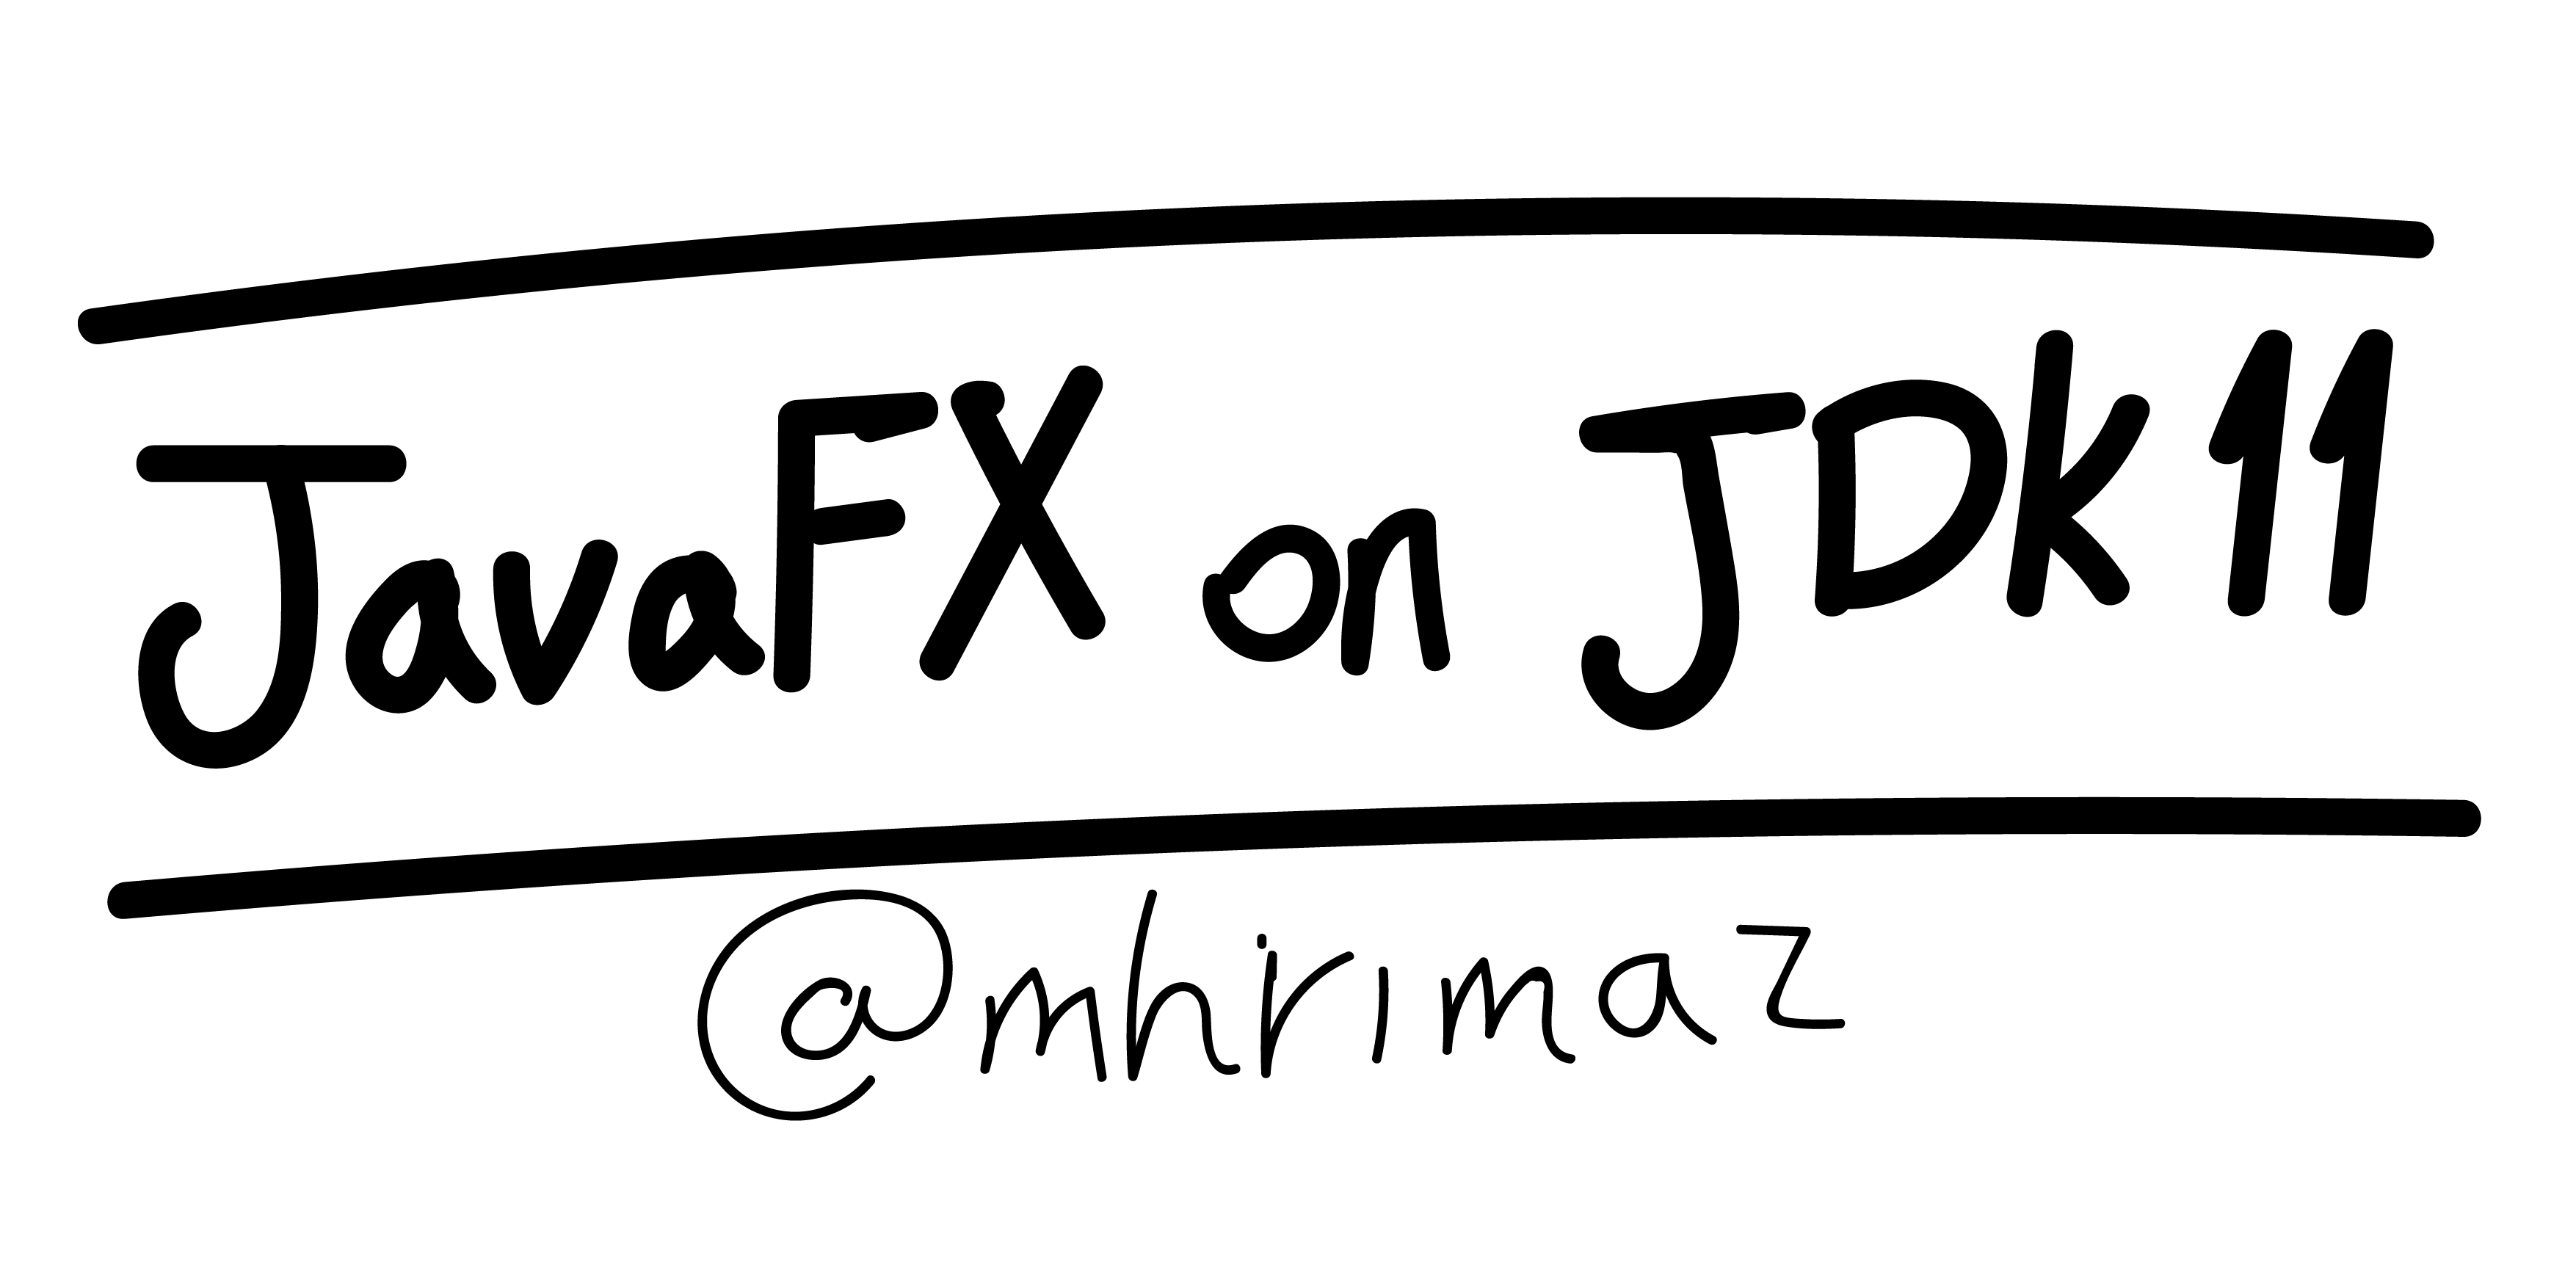 How to Create a Project With JavaFX on JDK 11 - DZone Java